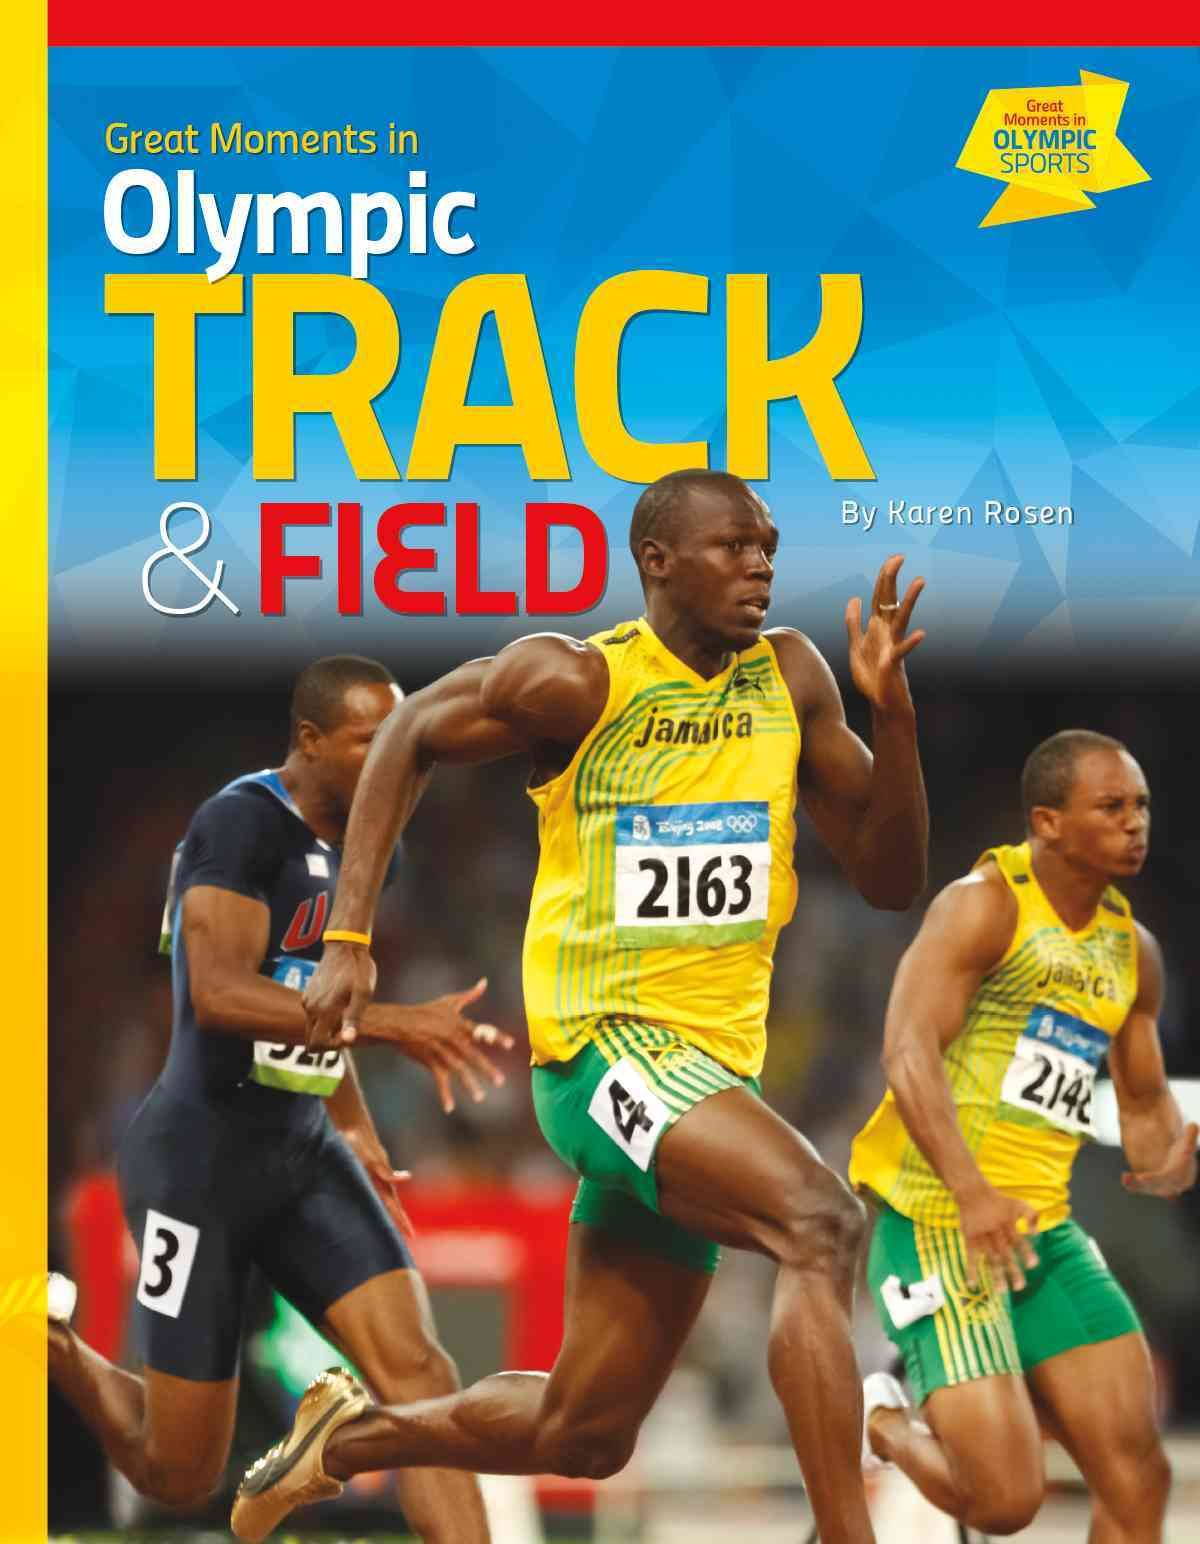 Explores Olympic Track And Field History Discussing Key Figures And Record Breakers Including Jesse Owens Blankers Koen And Usain Bolt